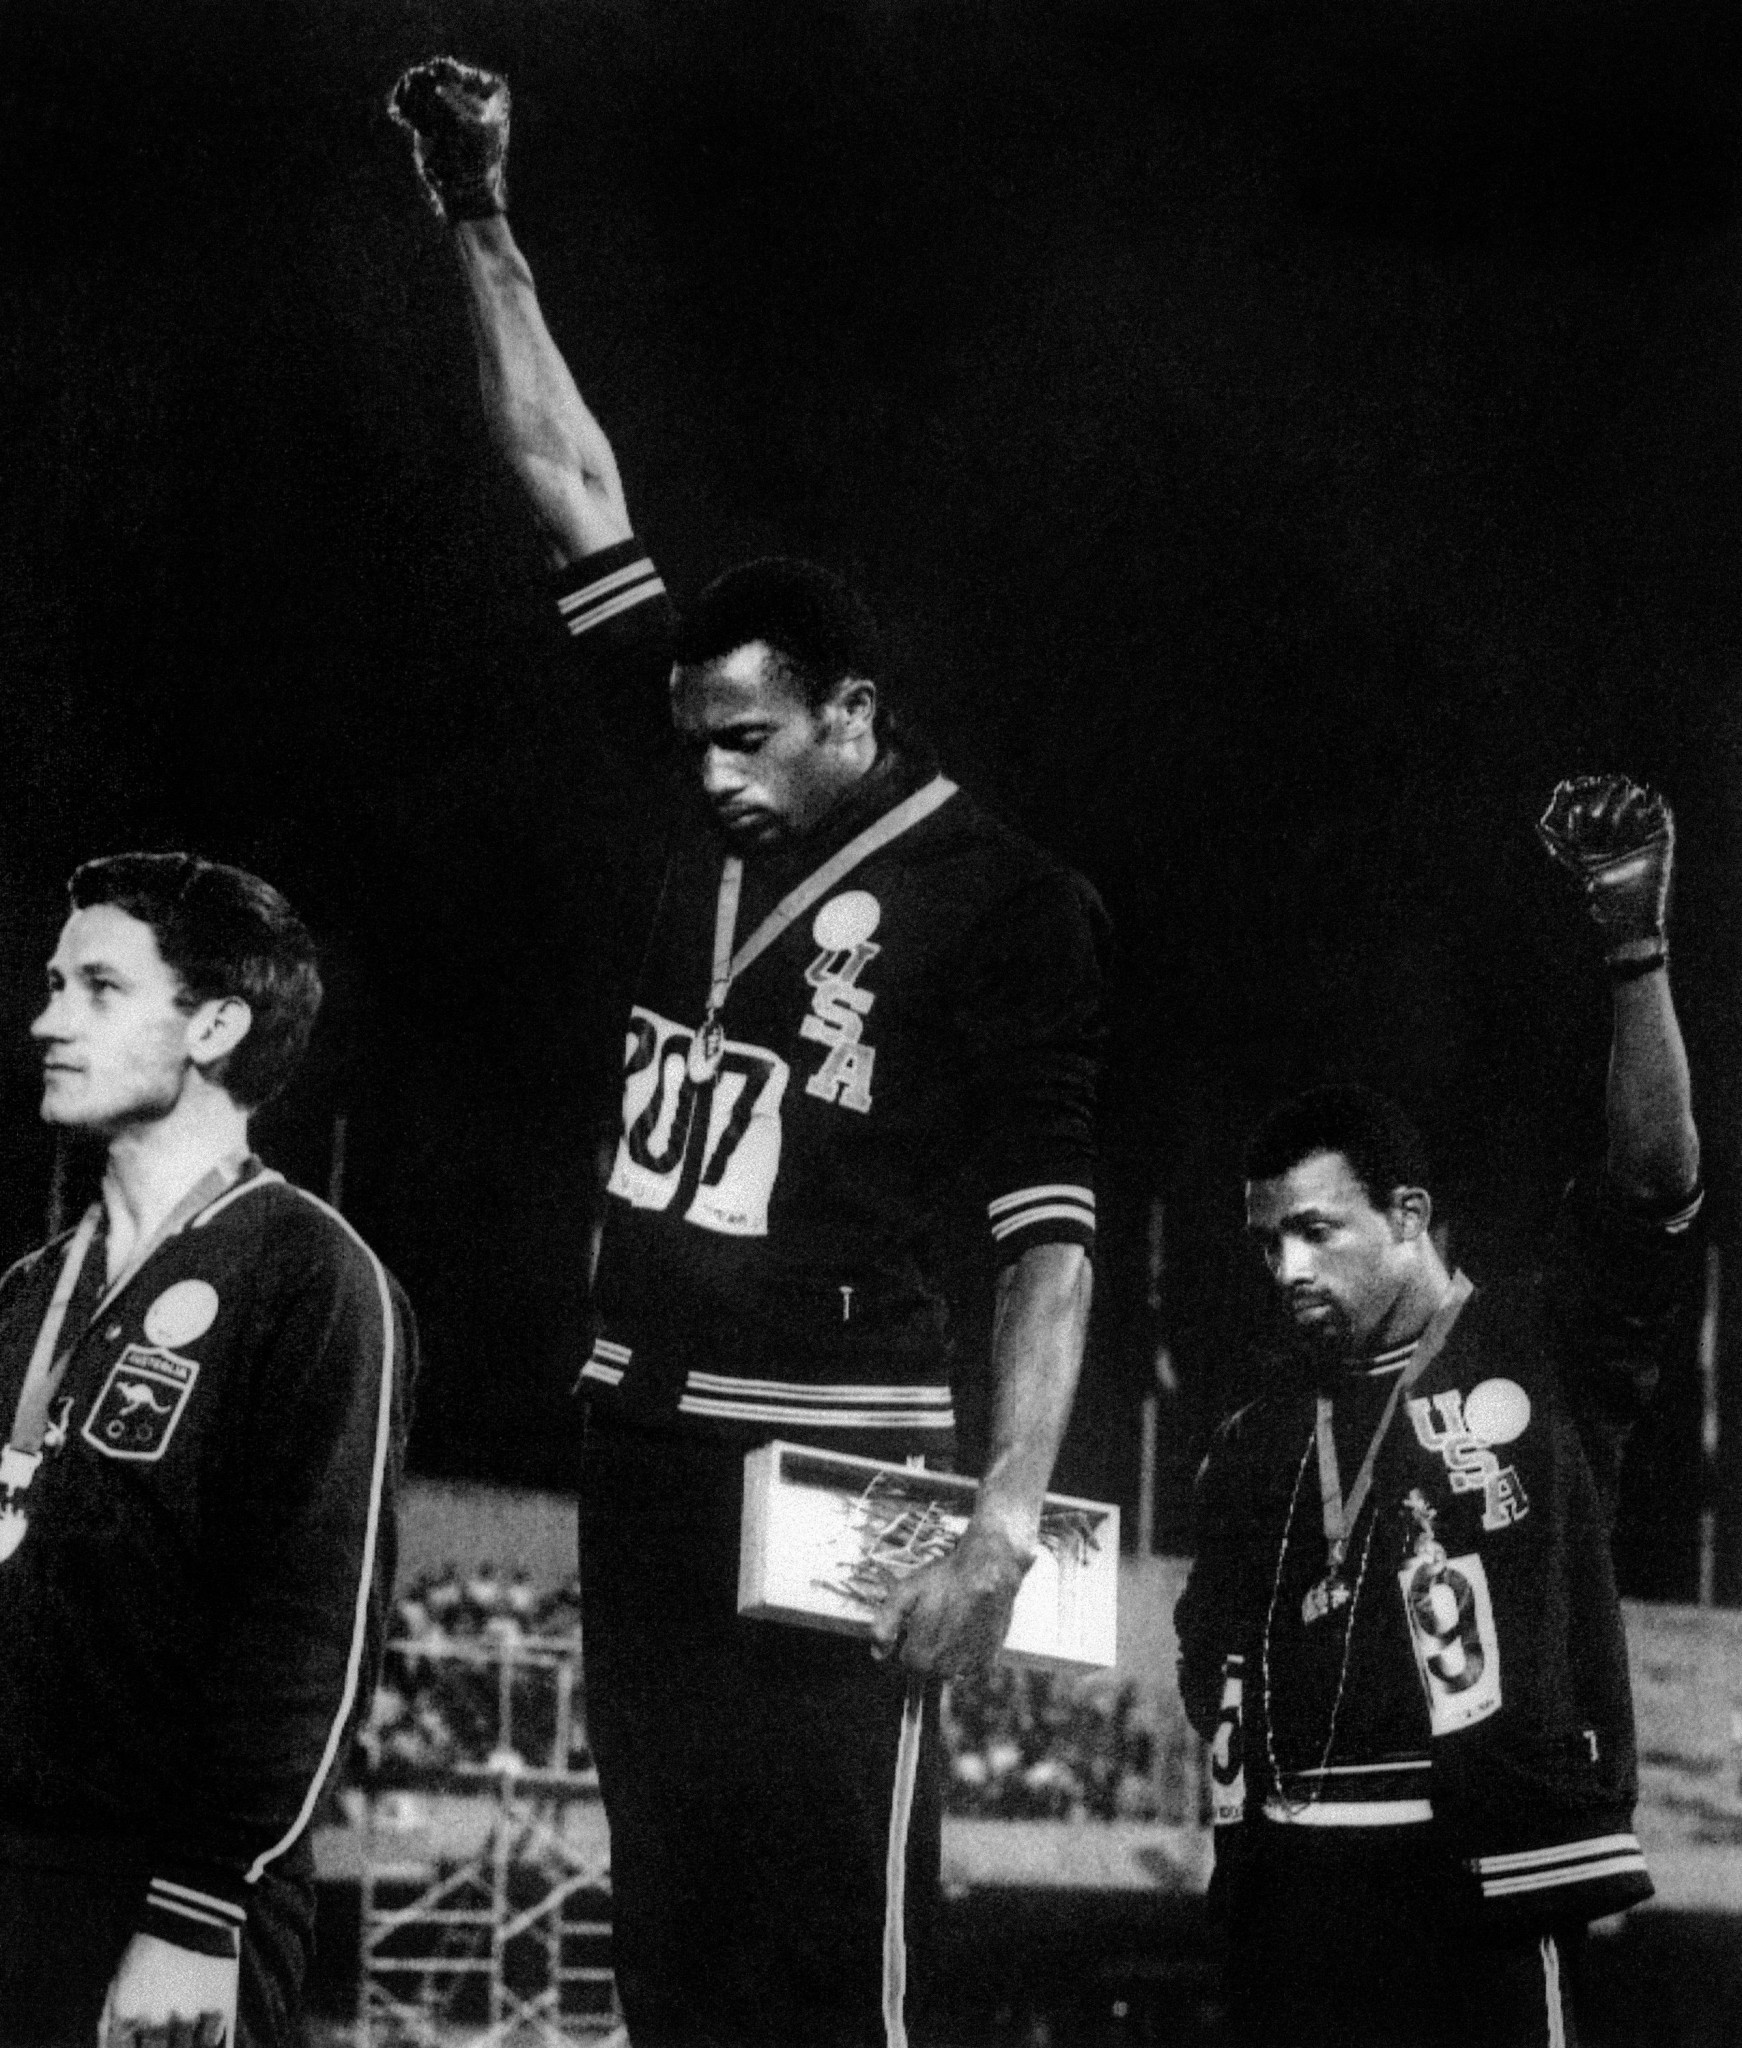 The protest about racism by Tommie Smith, centre, and John Carlos, right, after winning the Olympic gold and silver medals in the 200m at Mexico City caused uproar but helped lead to profound changes ©Getty Images